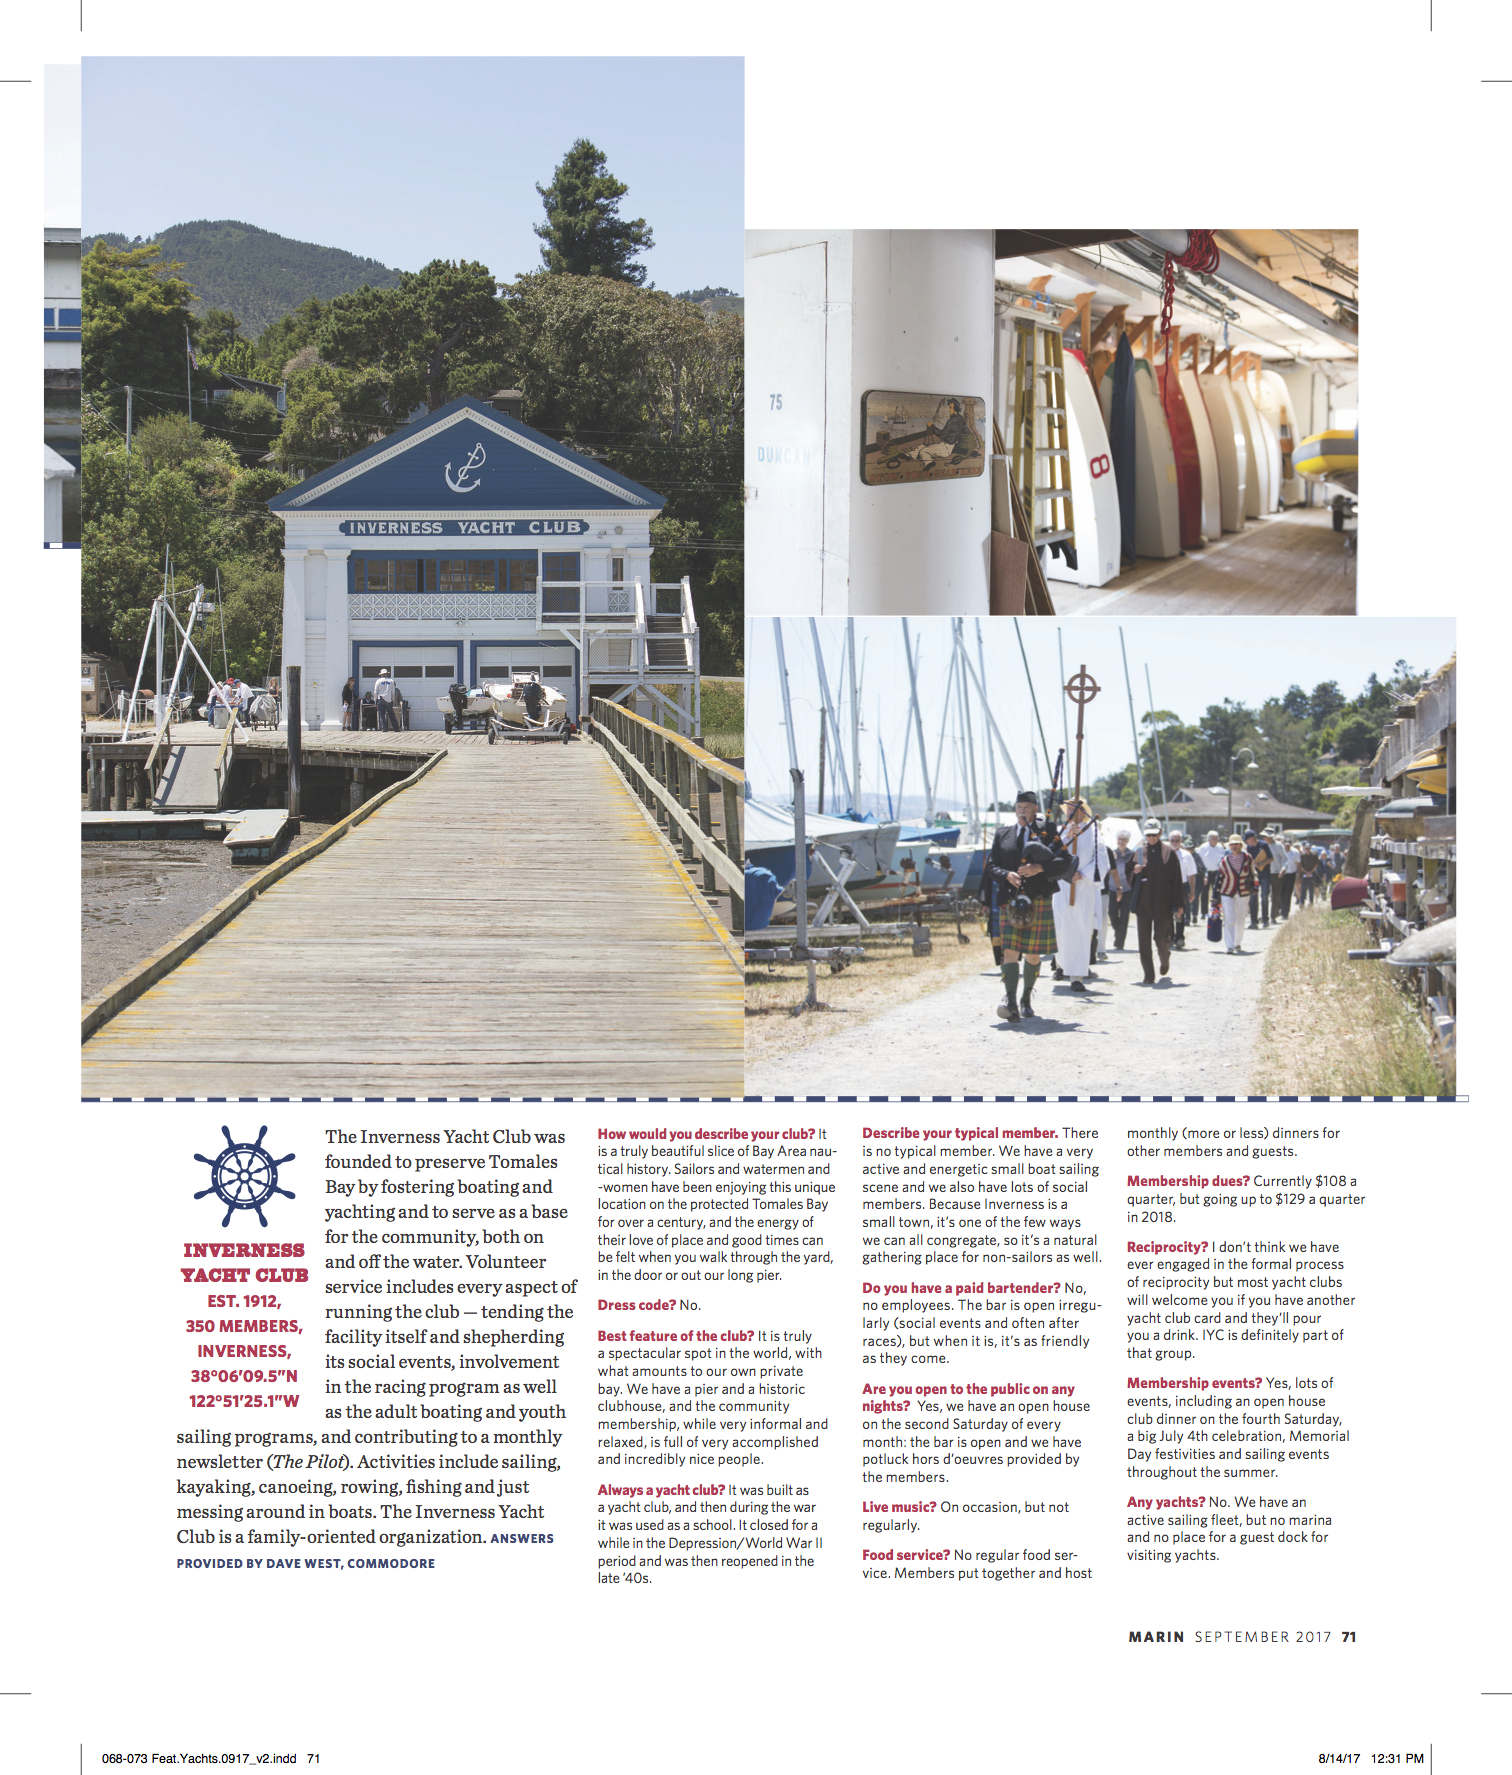 Extract of Marin Magazine Article on Friendly Bay Area Yacht Clubs